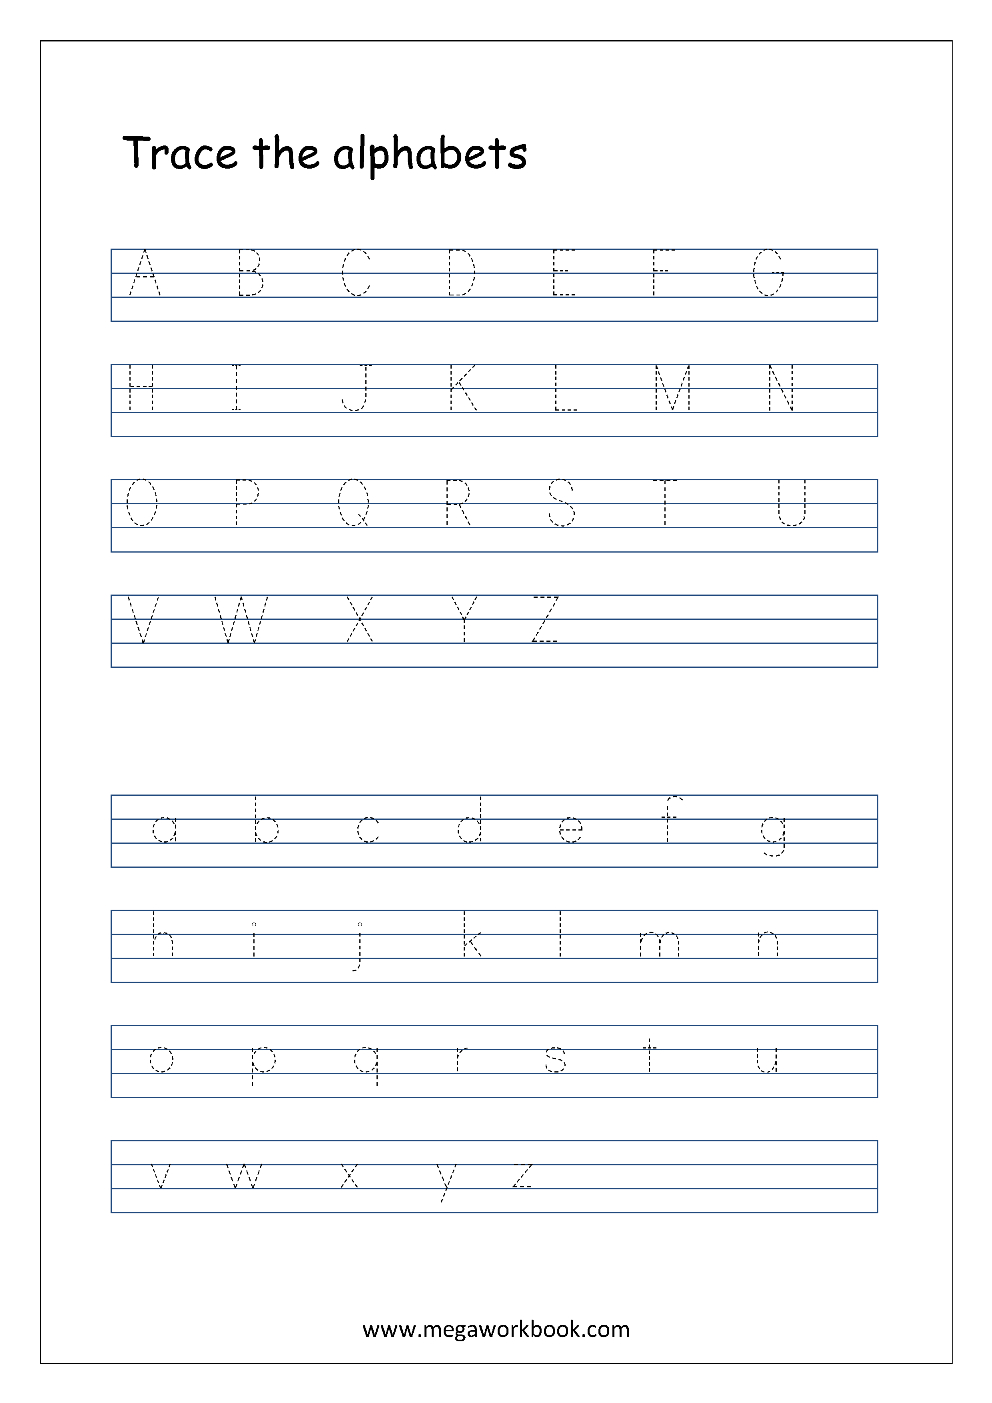 English Worksheet - Alphabet Tracing - Capital And Small inside Tracing Urdu Letters